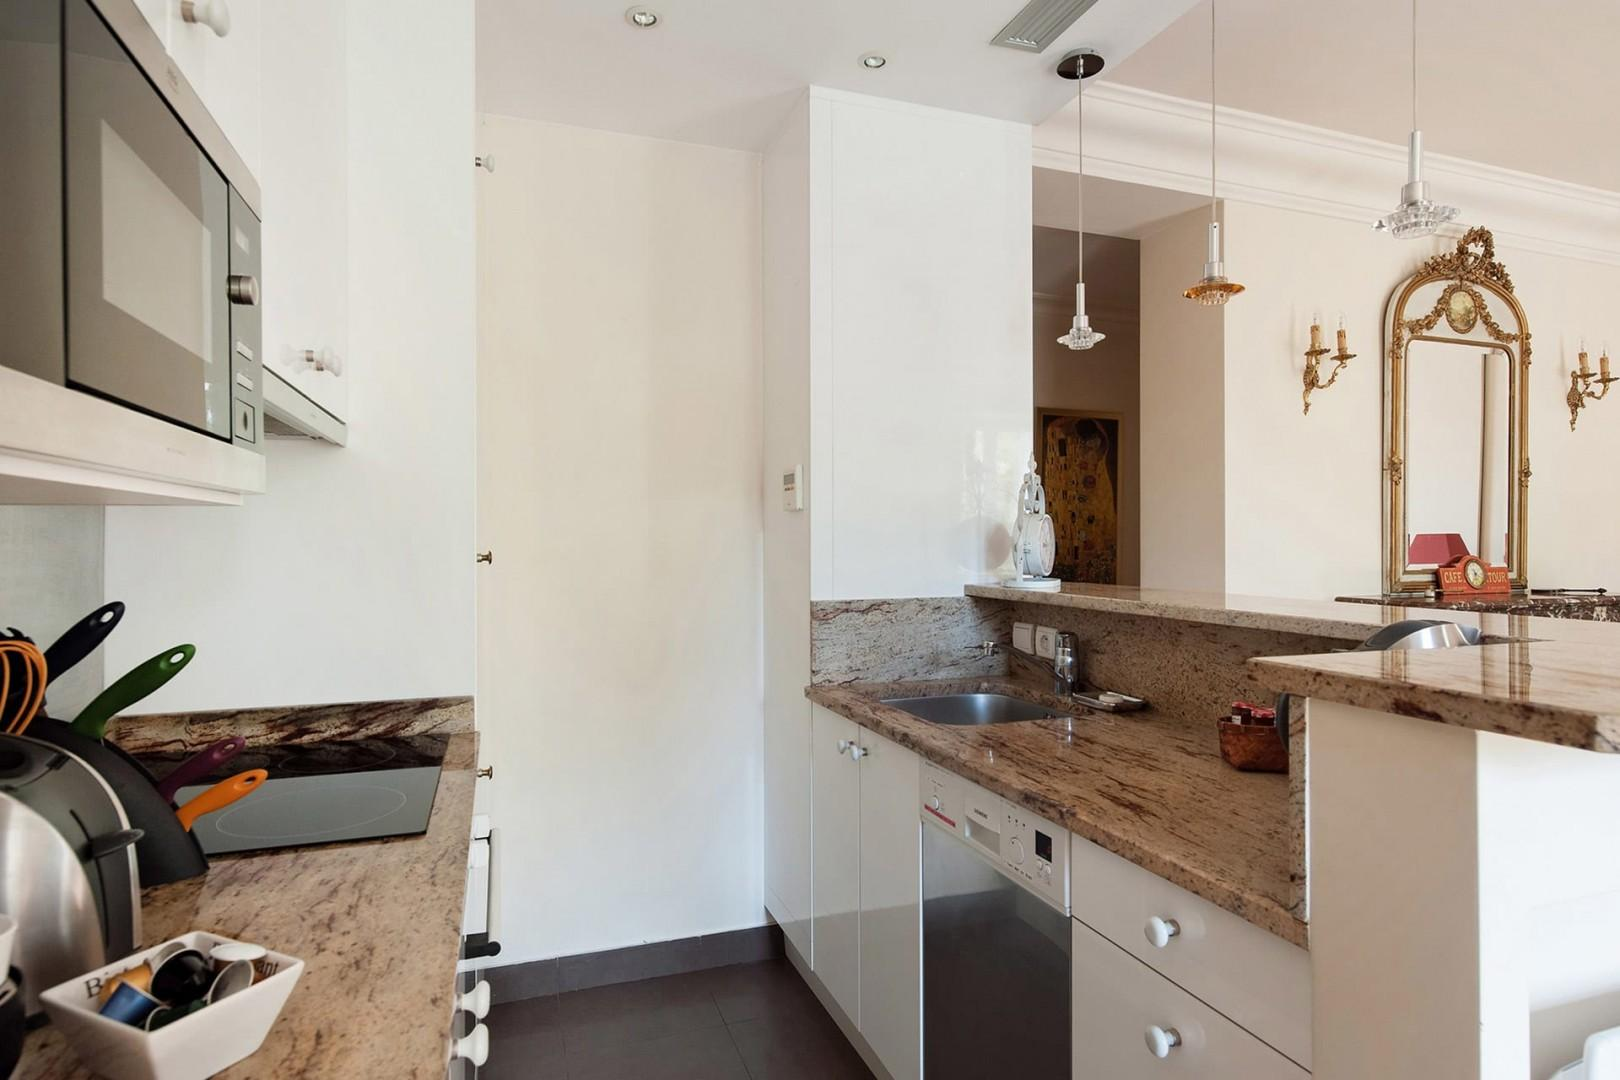 All necessary appliances are at your disposal in this modern kitchen.